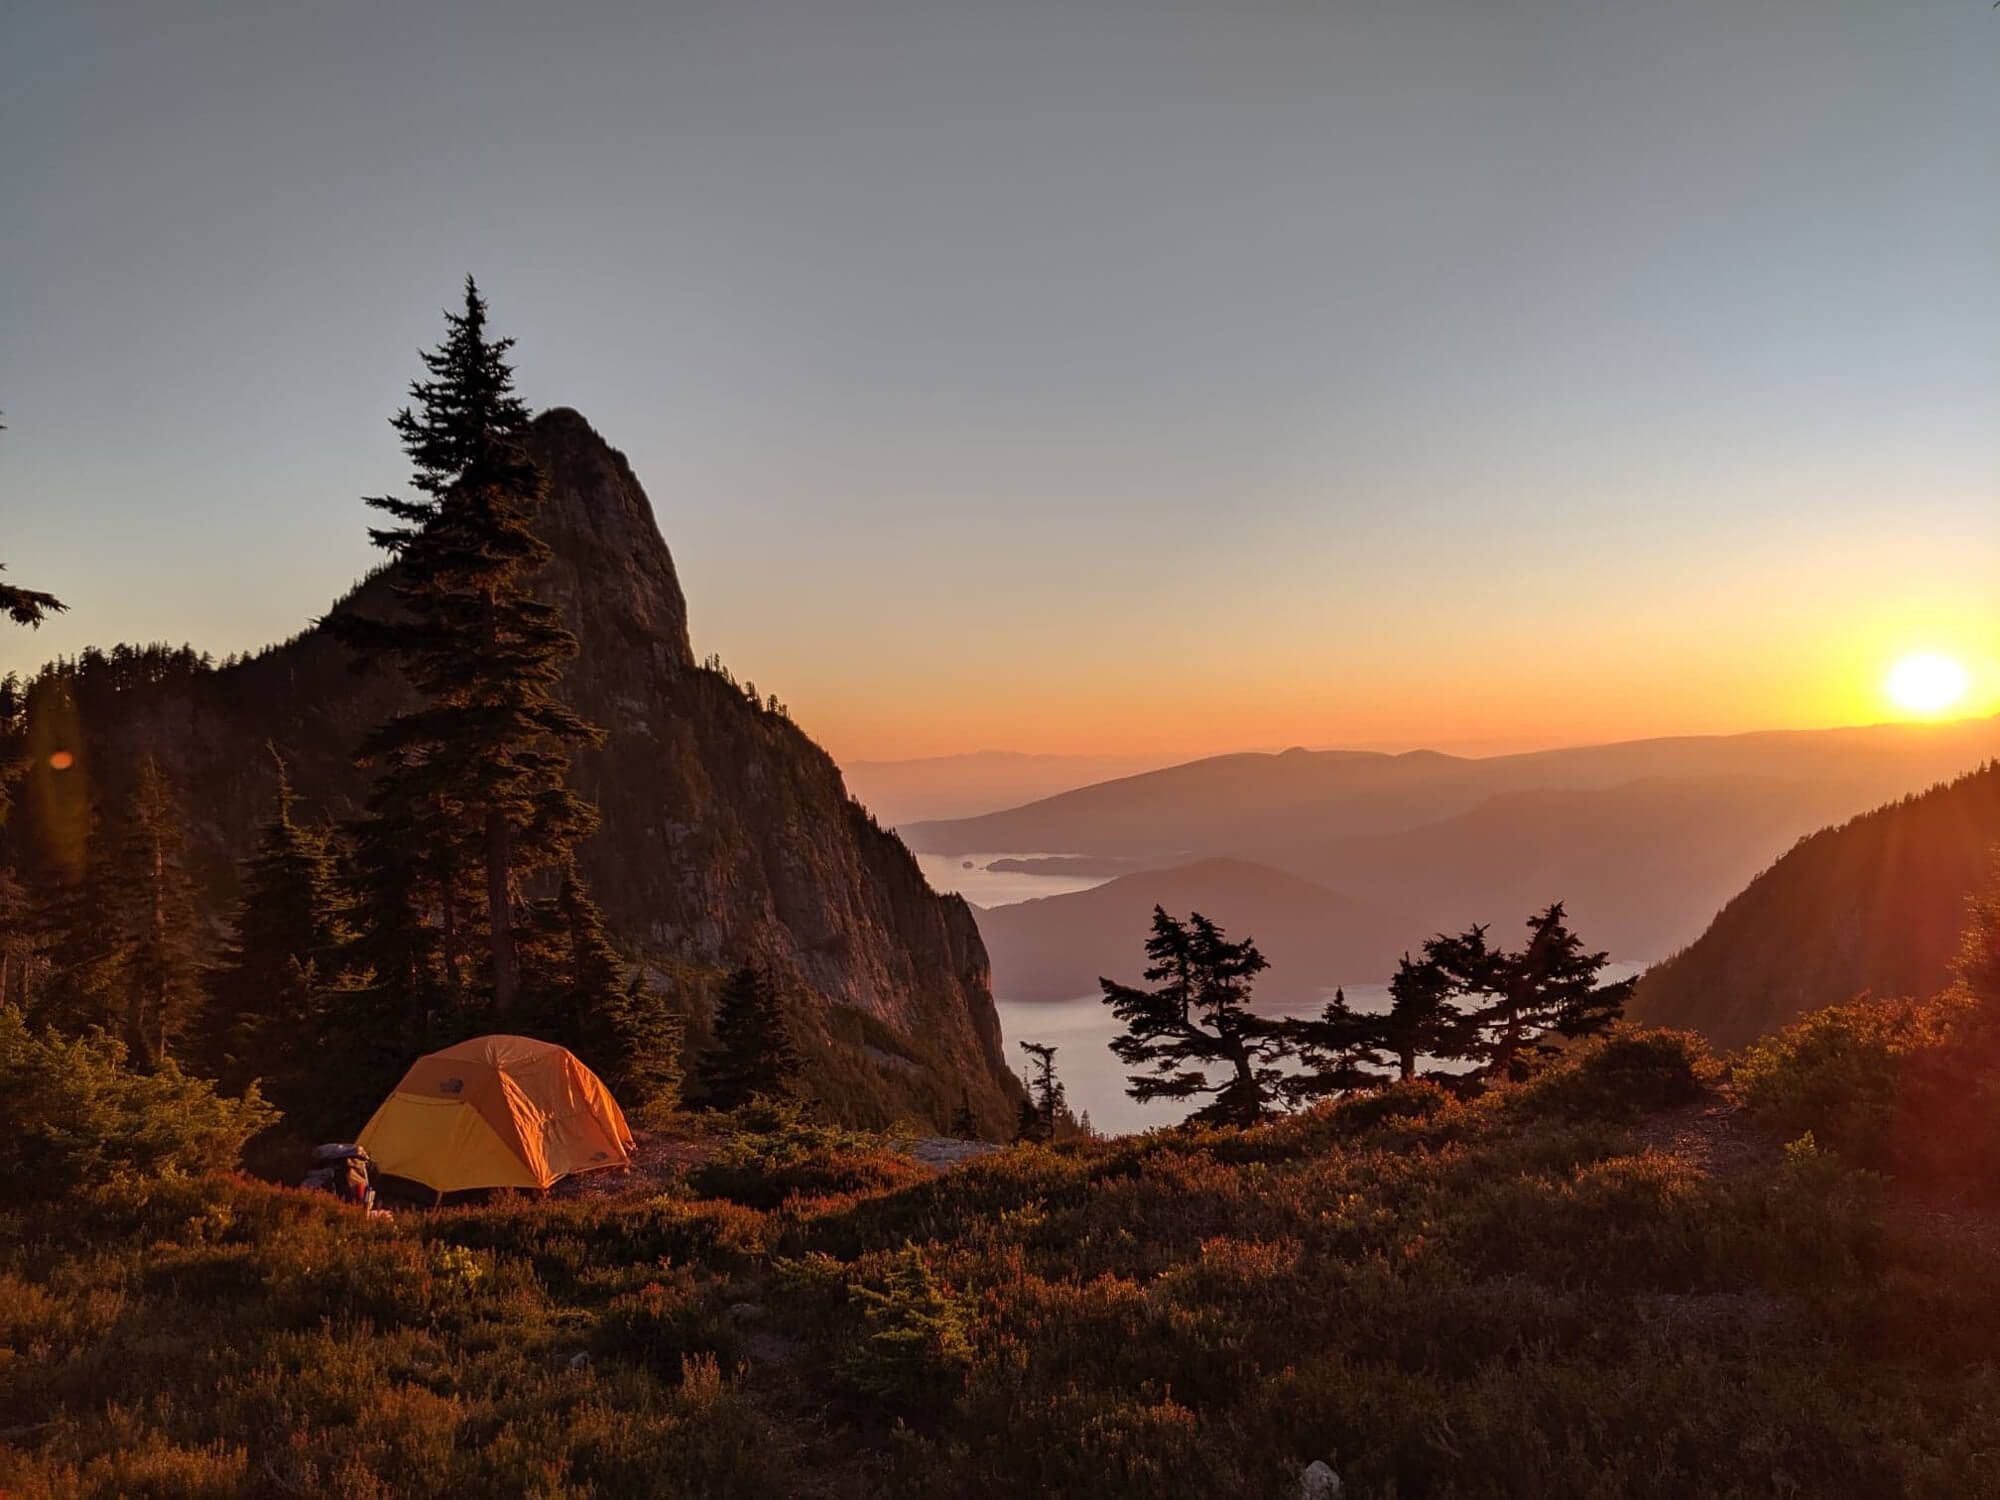 View from the campsite at magnesia meadows